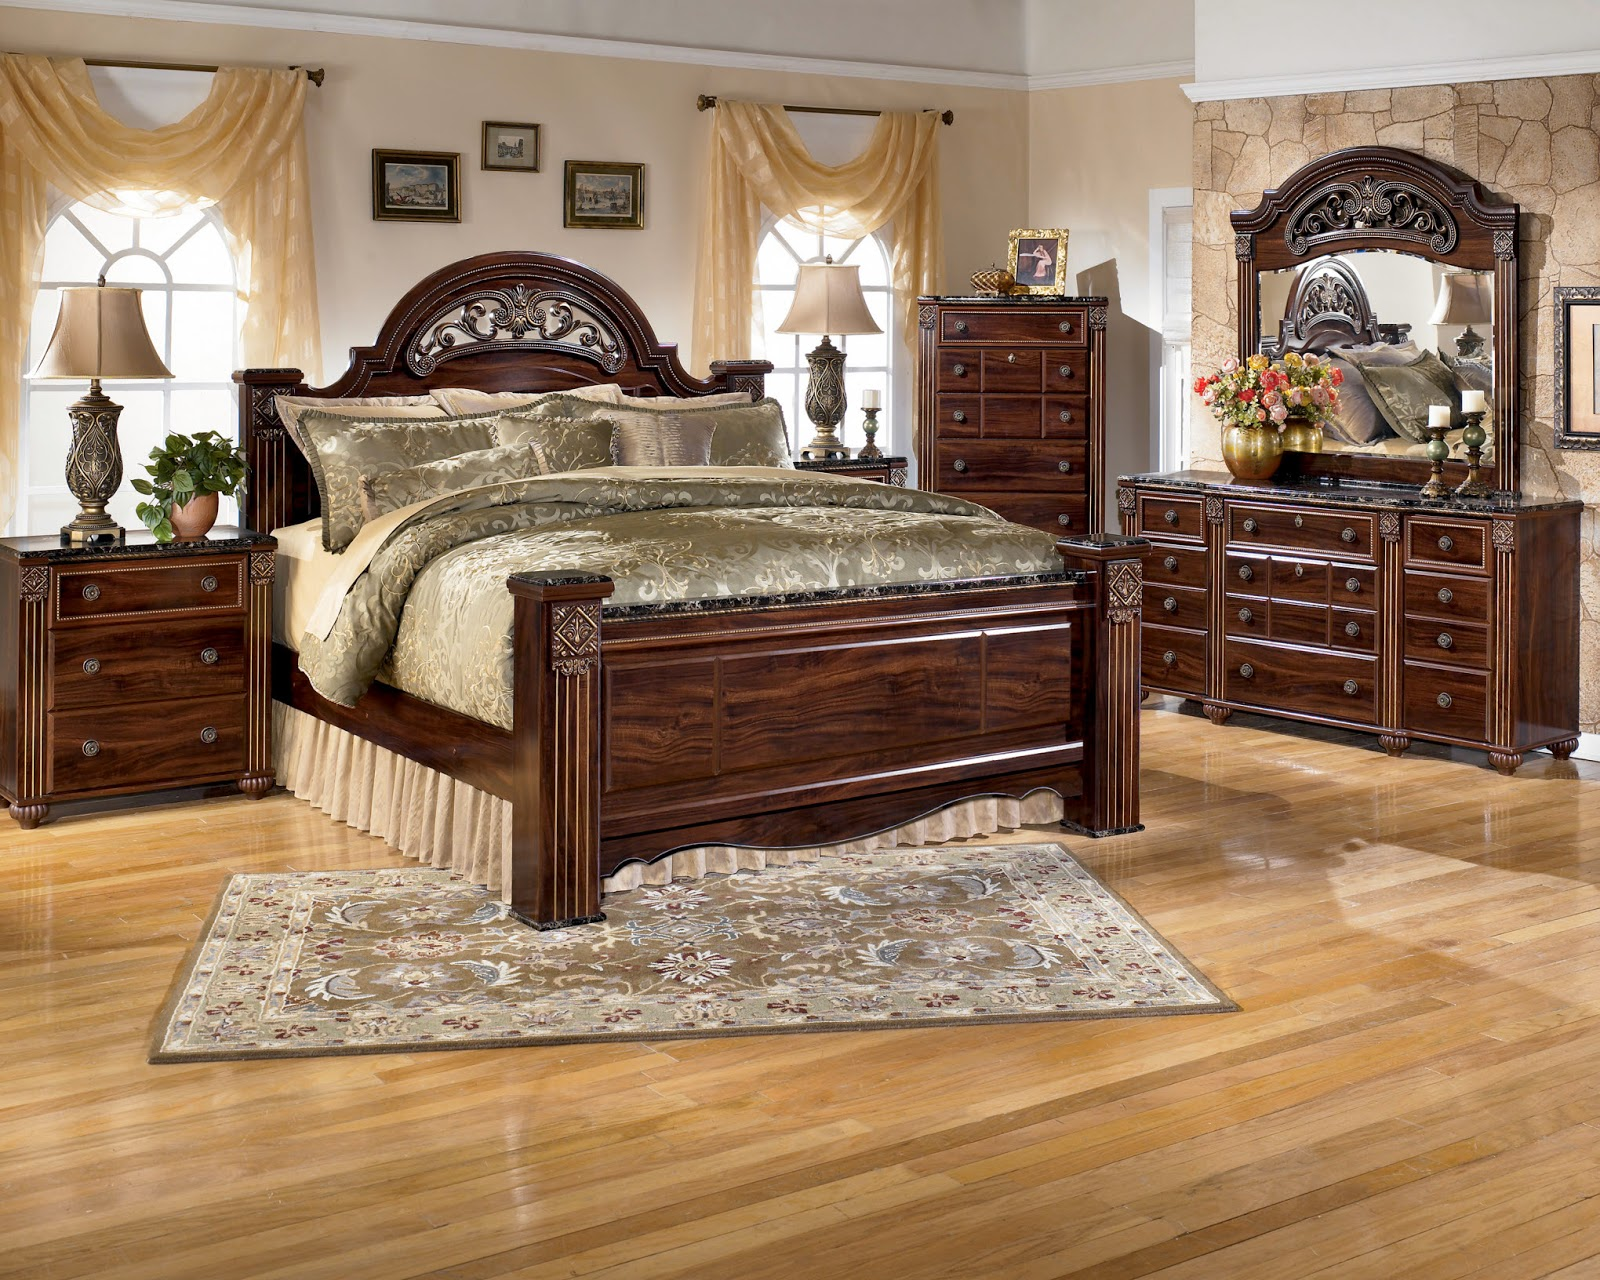 Ashley furniture bedroom sets on sale popular interior house ideas - Bedroom sets ashley furniture ...